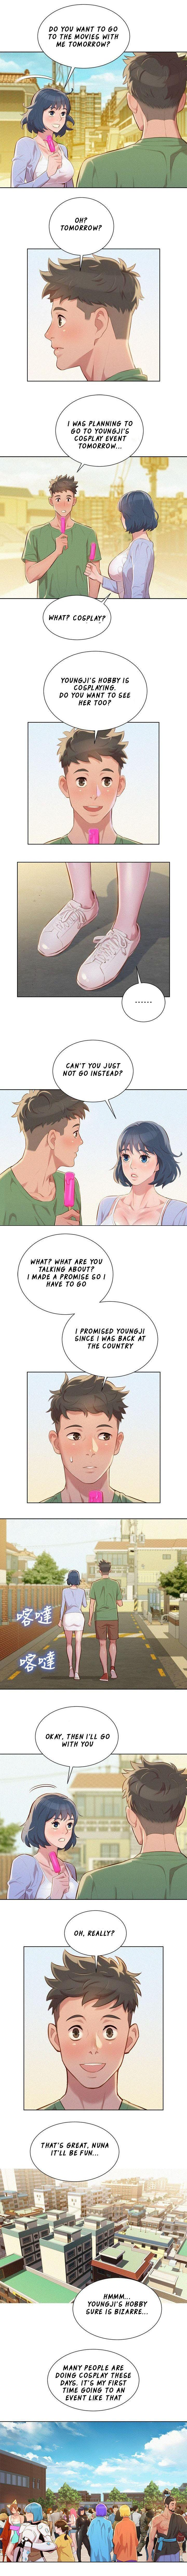 What do you Take me For? Ch.50/? 381